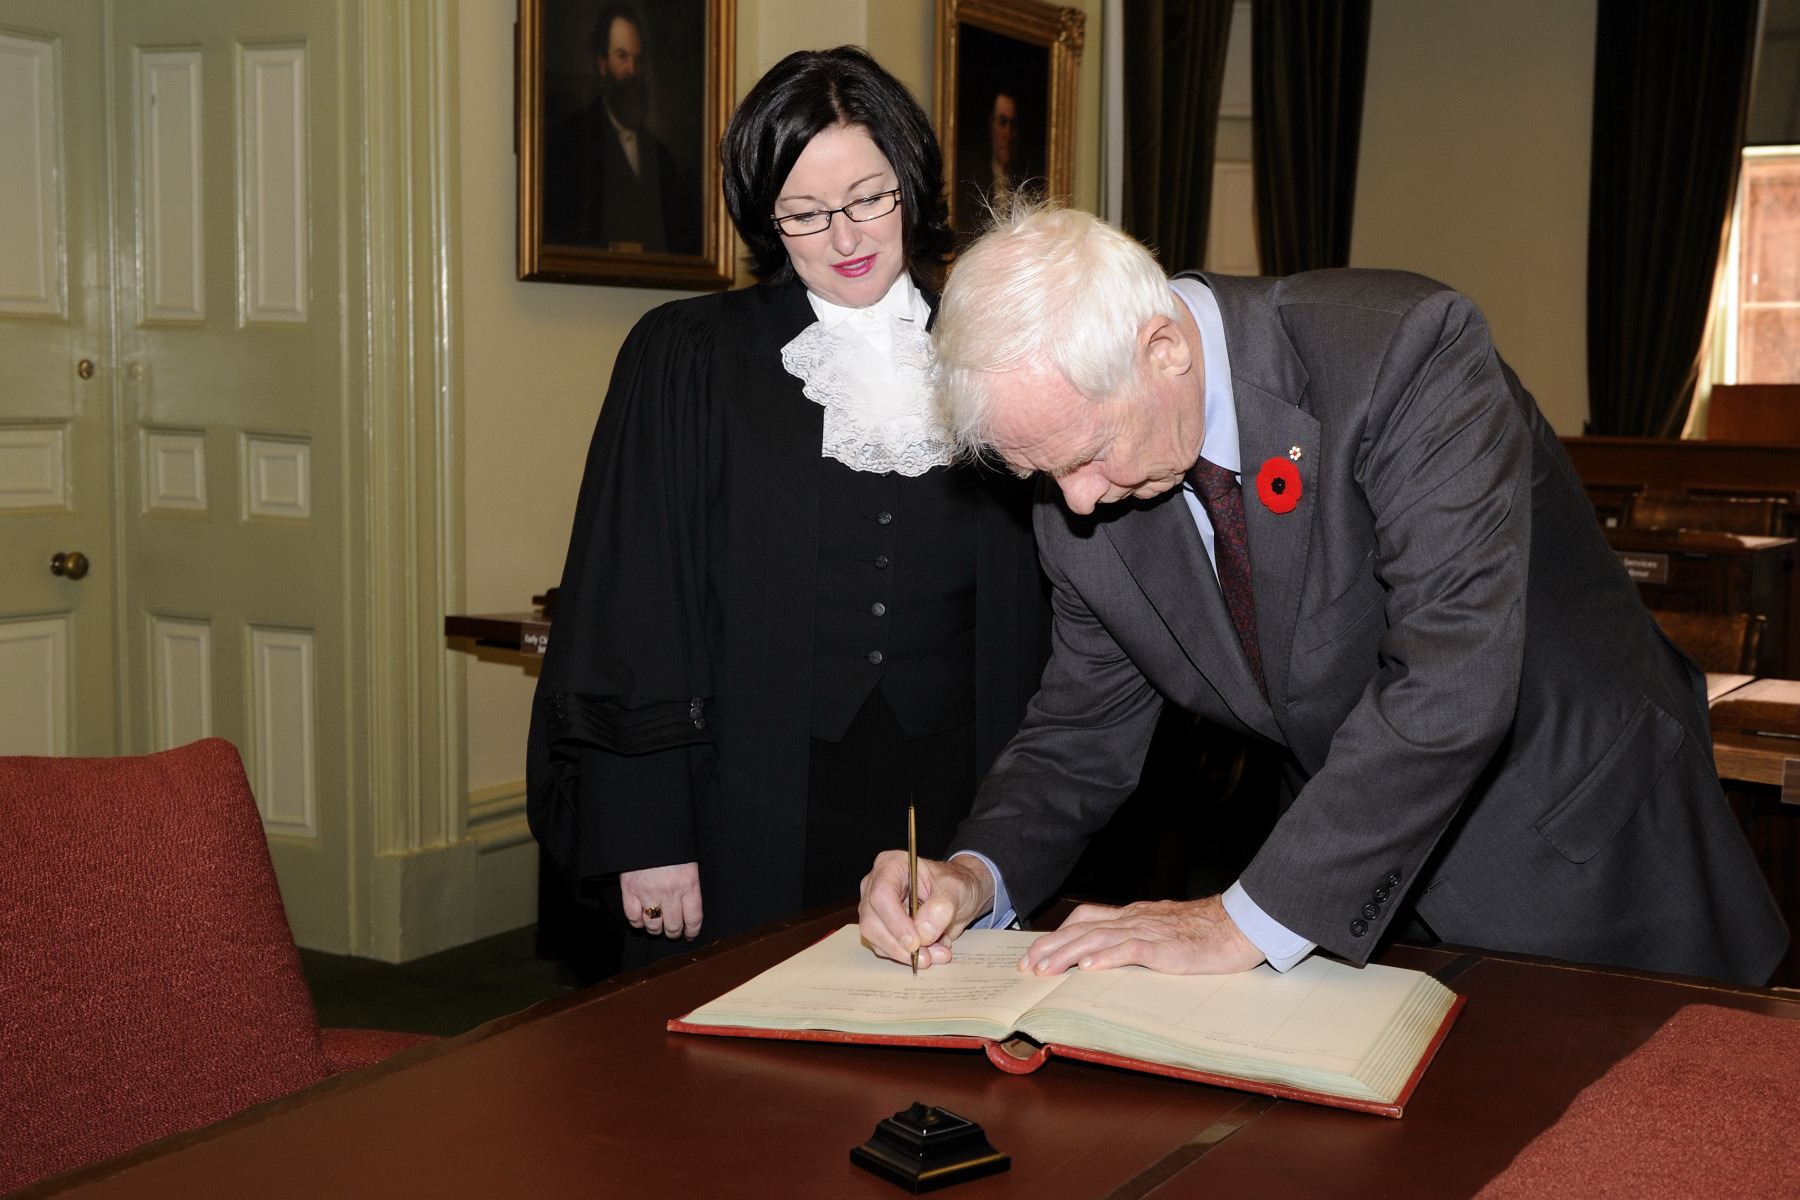 In the presence of the Speaker of the Legislative Assembly, His Excellency signed the guest book in the Legislative Chamber.